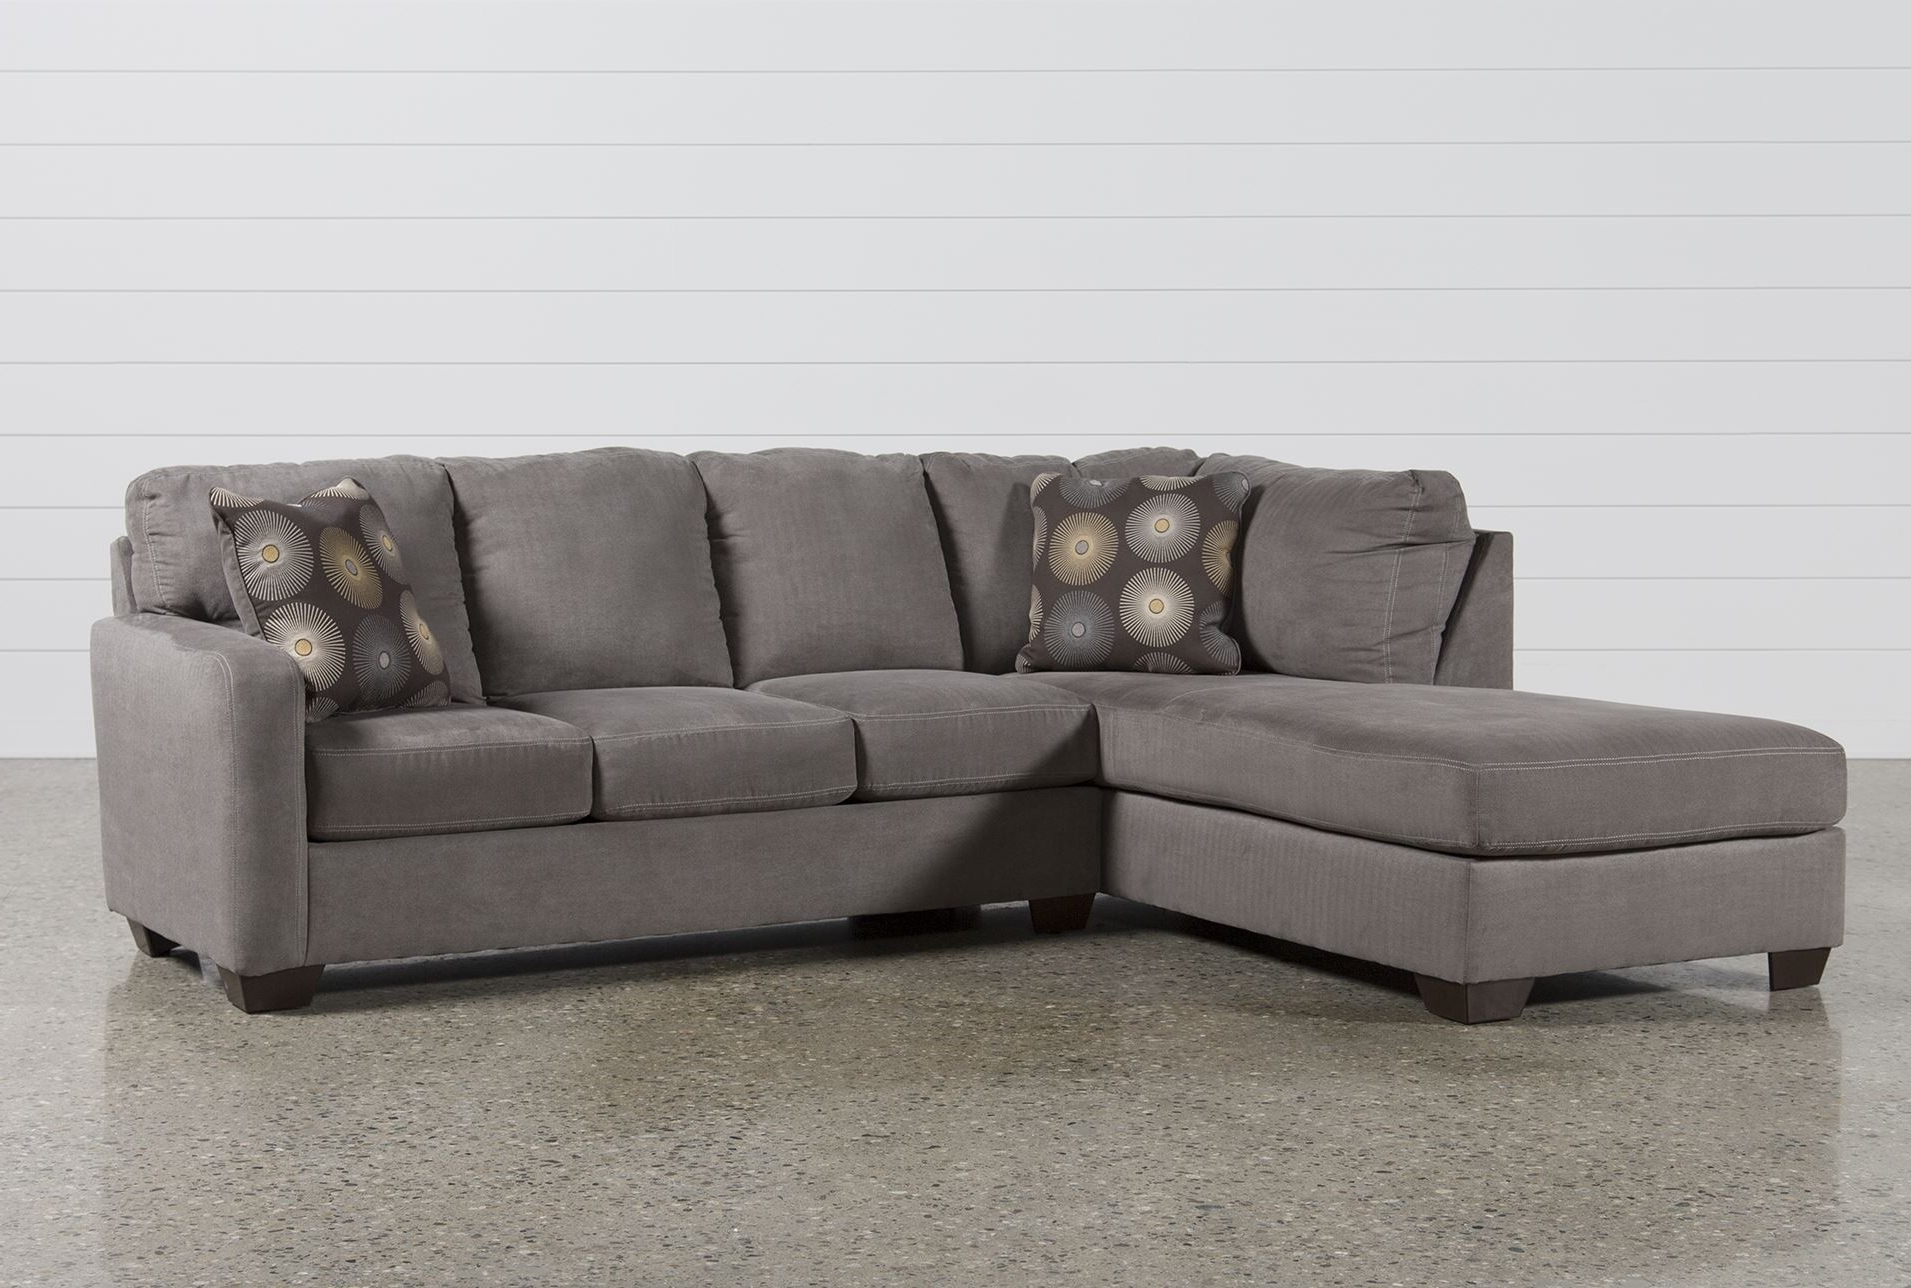 2018 Sofa ~ Luxury Leather Sofa With Chaise Lounge Cute Small Sectional Intended For Gray Sectionals With Chaise (View 1 of 15)